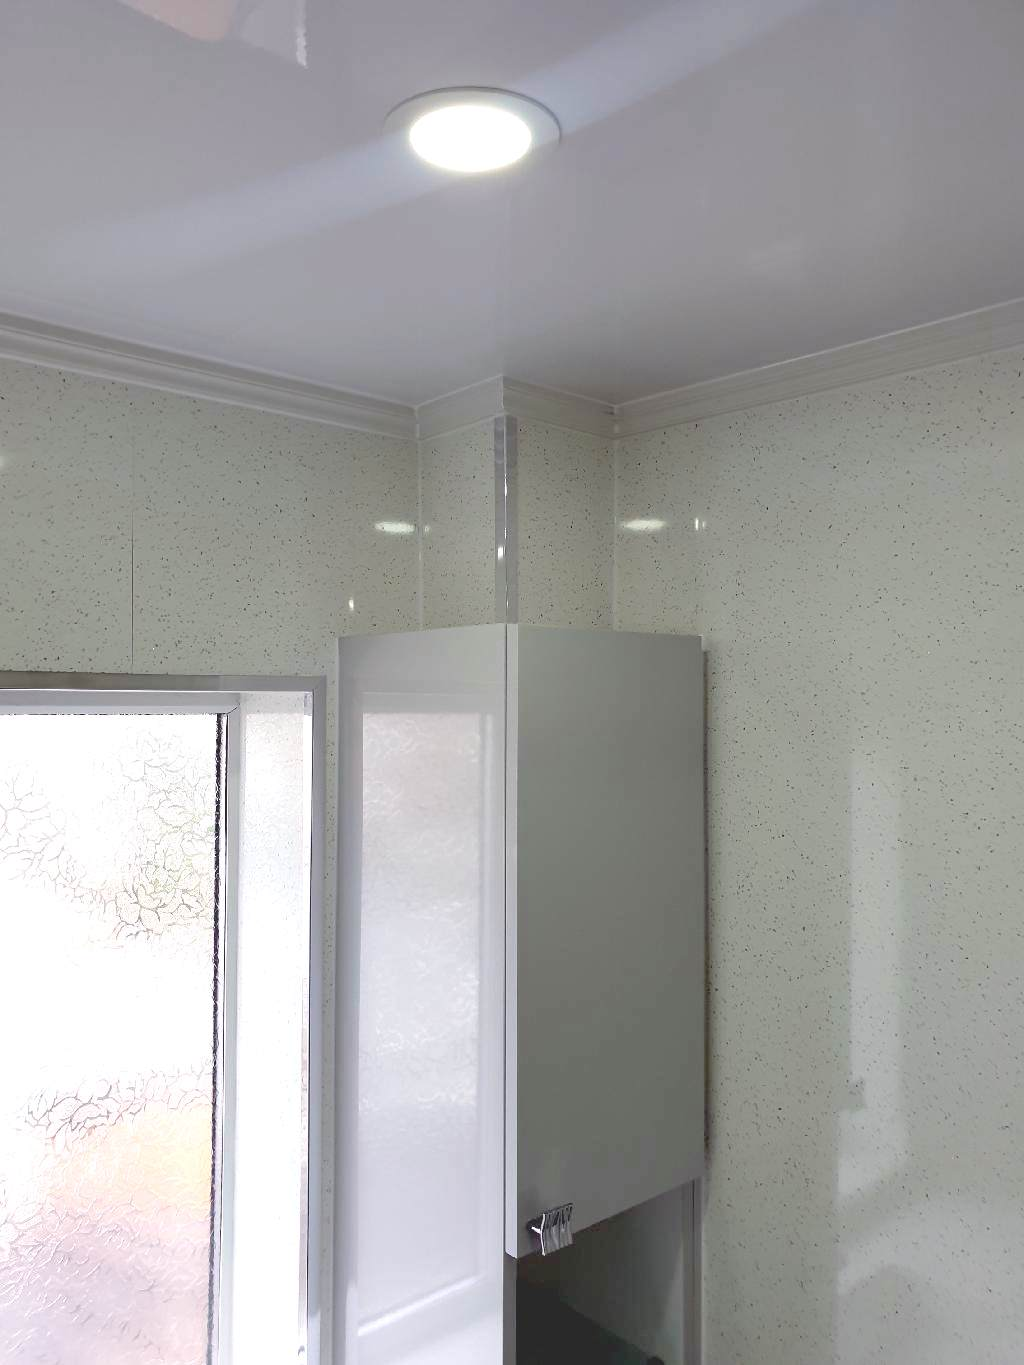 portfolio Example - Luxury Bathrooms Birmingham Wet Room - Bathroom Lighting - LED Spot Lights